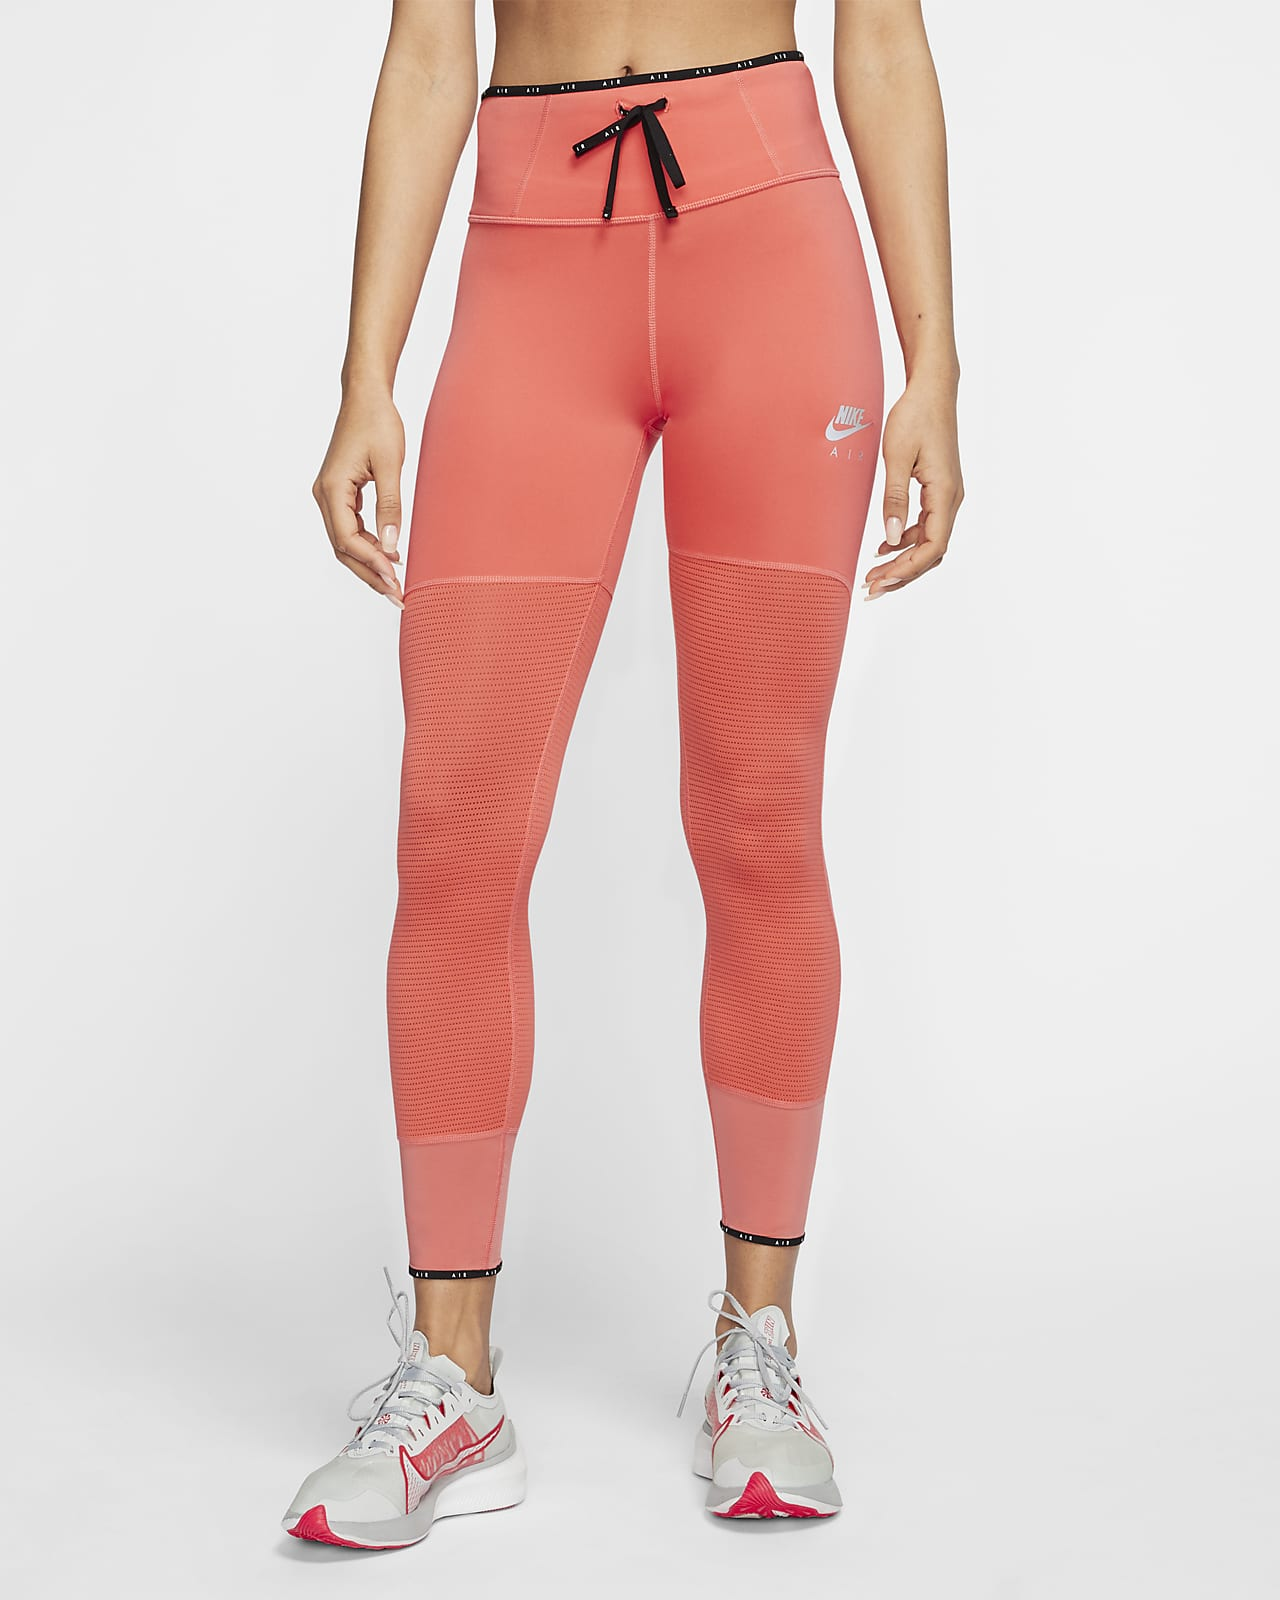 Nike Air Women's 7/8 Running Tights